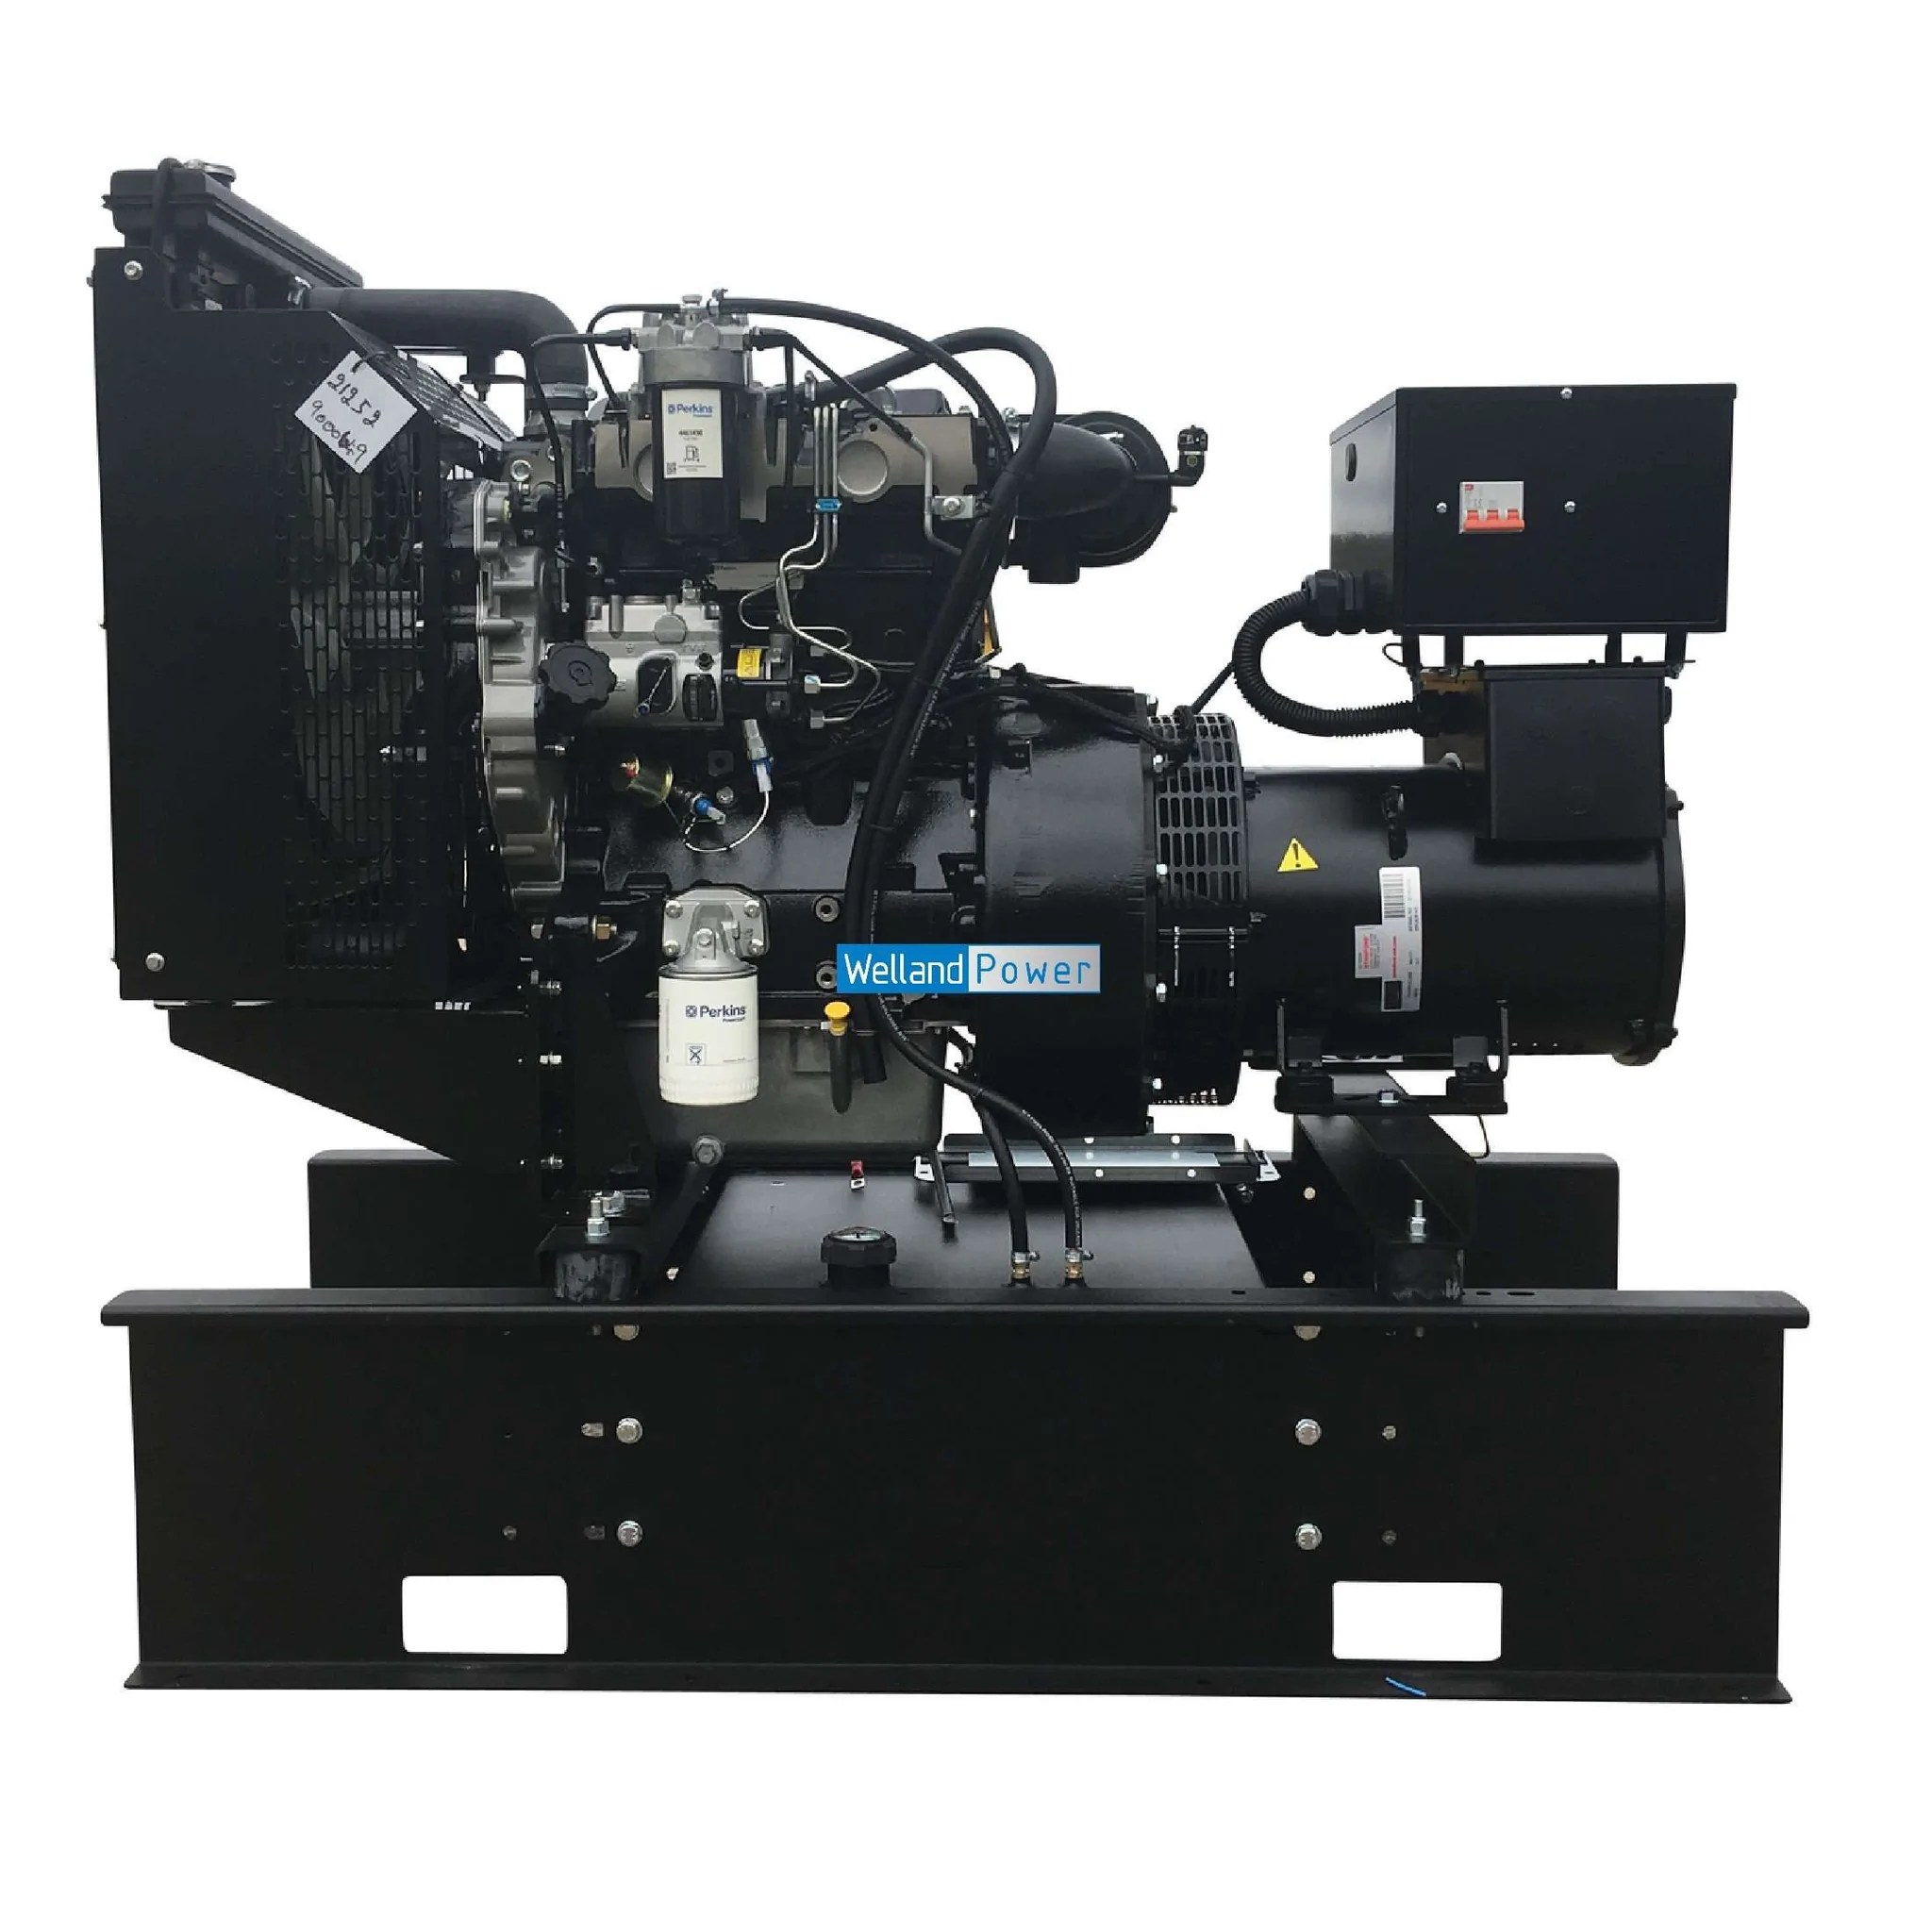 hight resolution of a welland power wp13 diesel generator powered by a perkins 403a 15g1 diesel engine